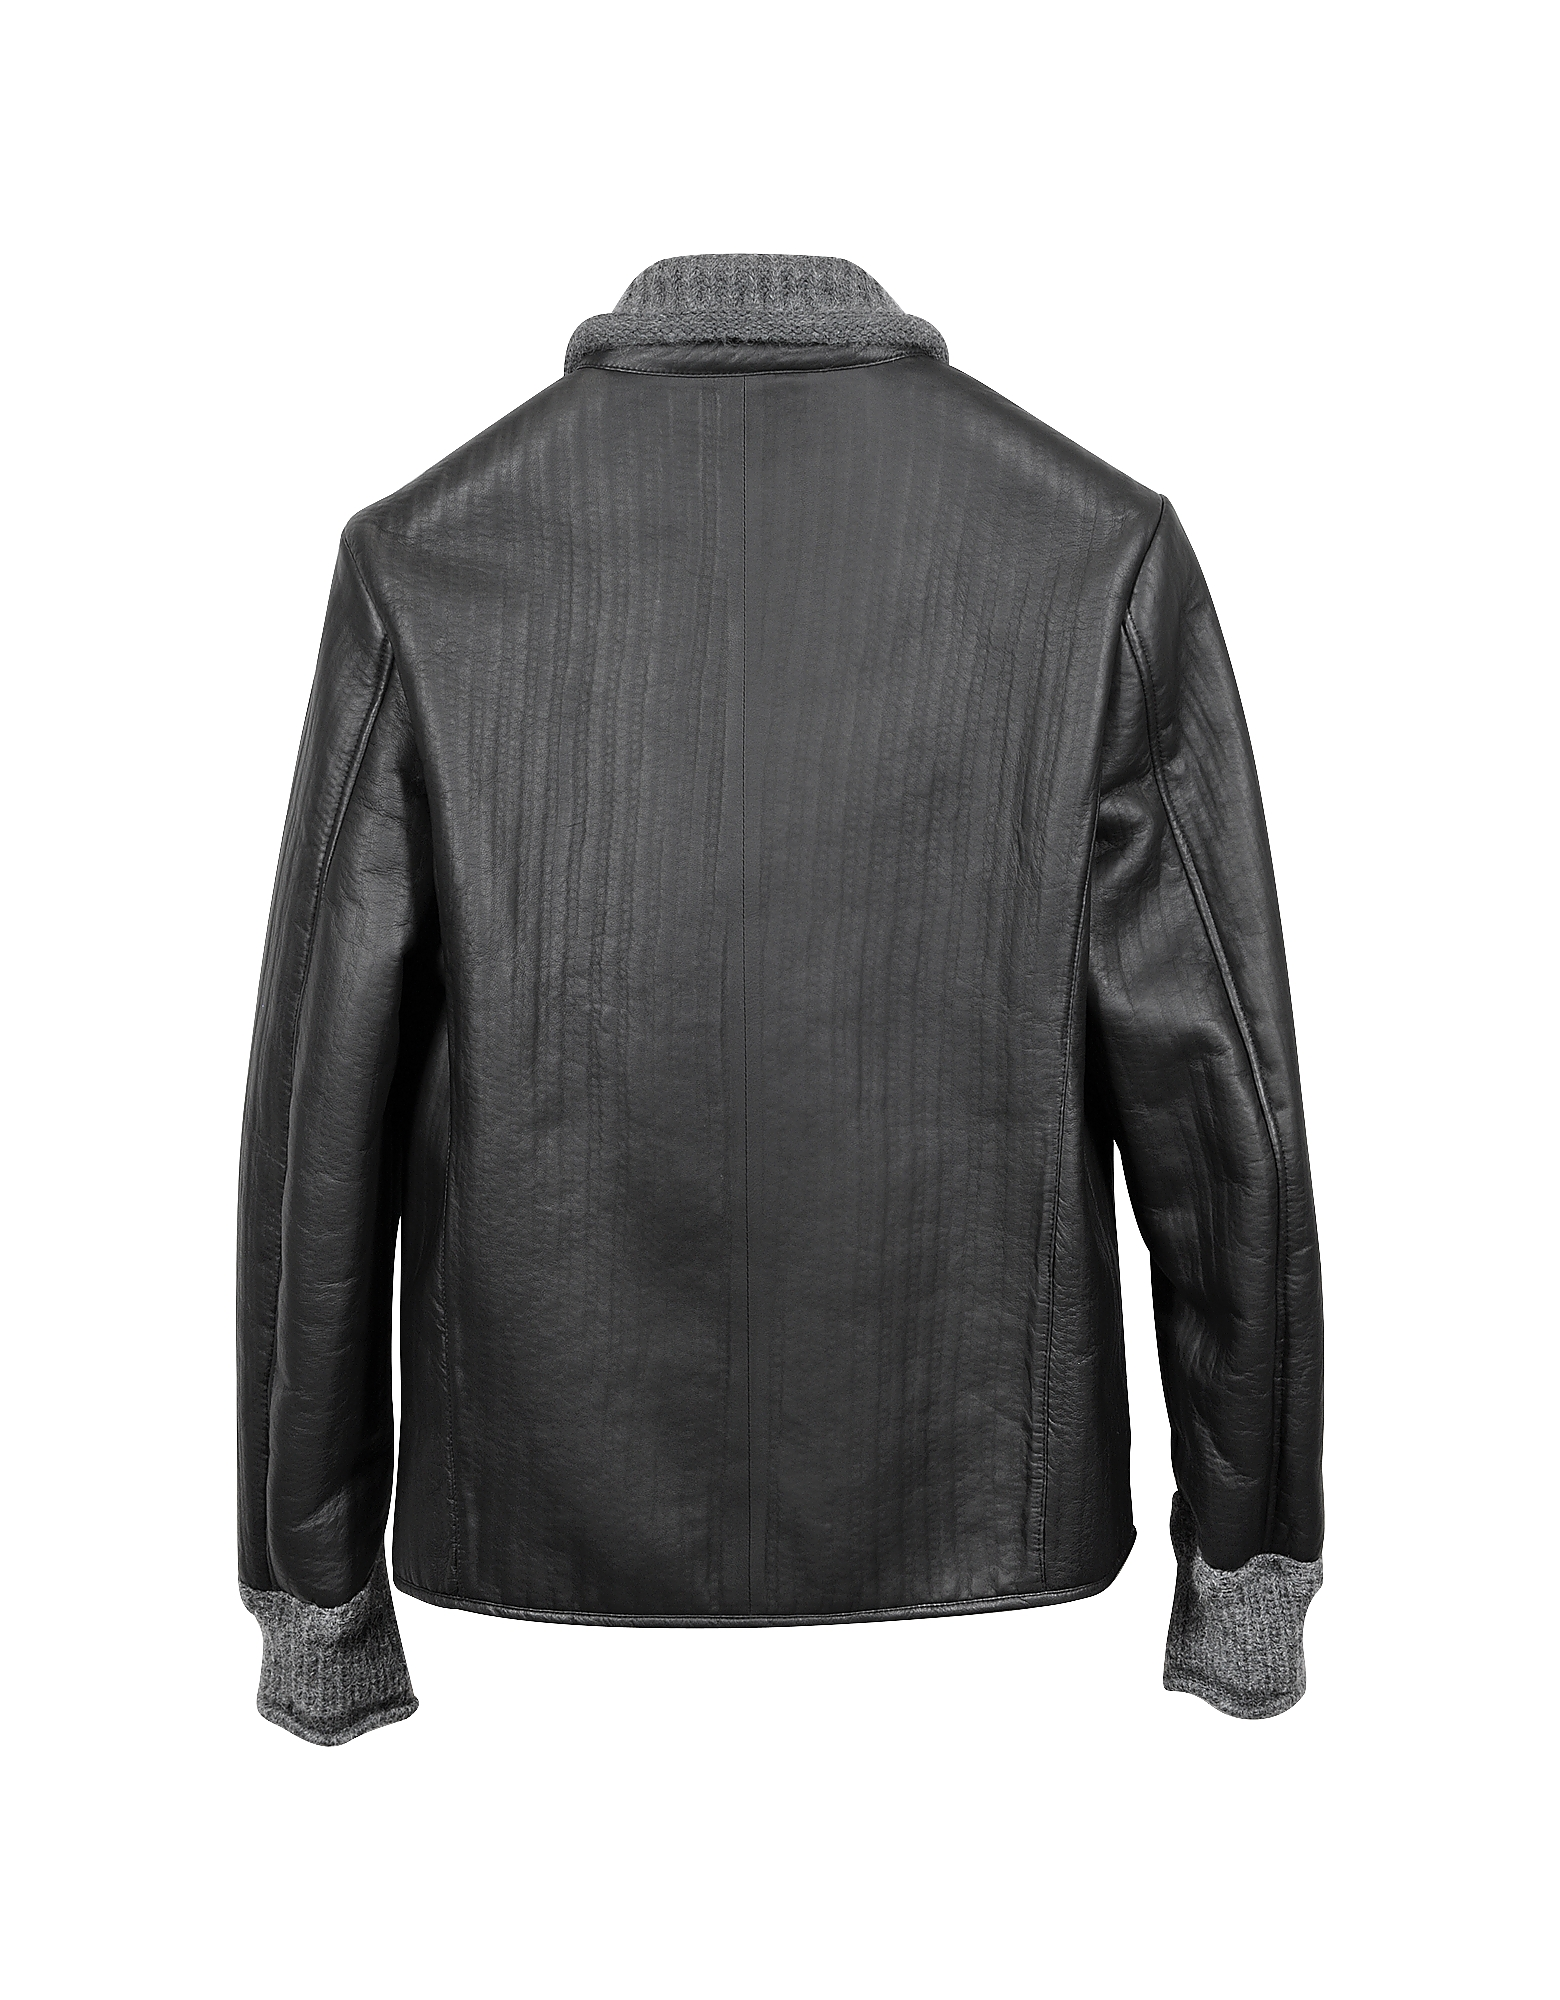 Men's Black and Gray Wool Leather Motorcycle Zip Jacket от Forzieri.com INT